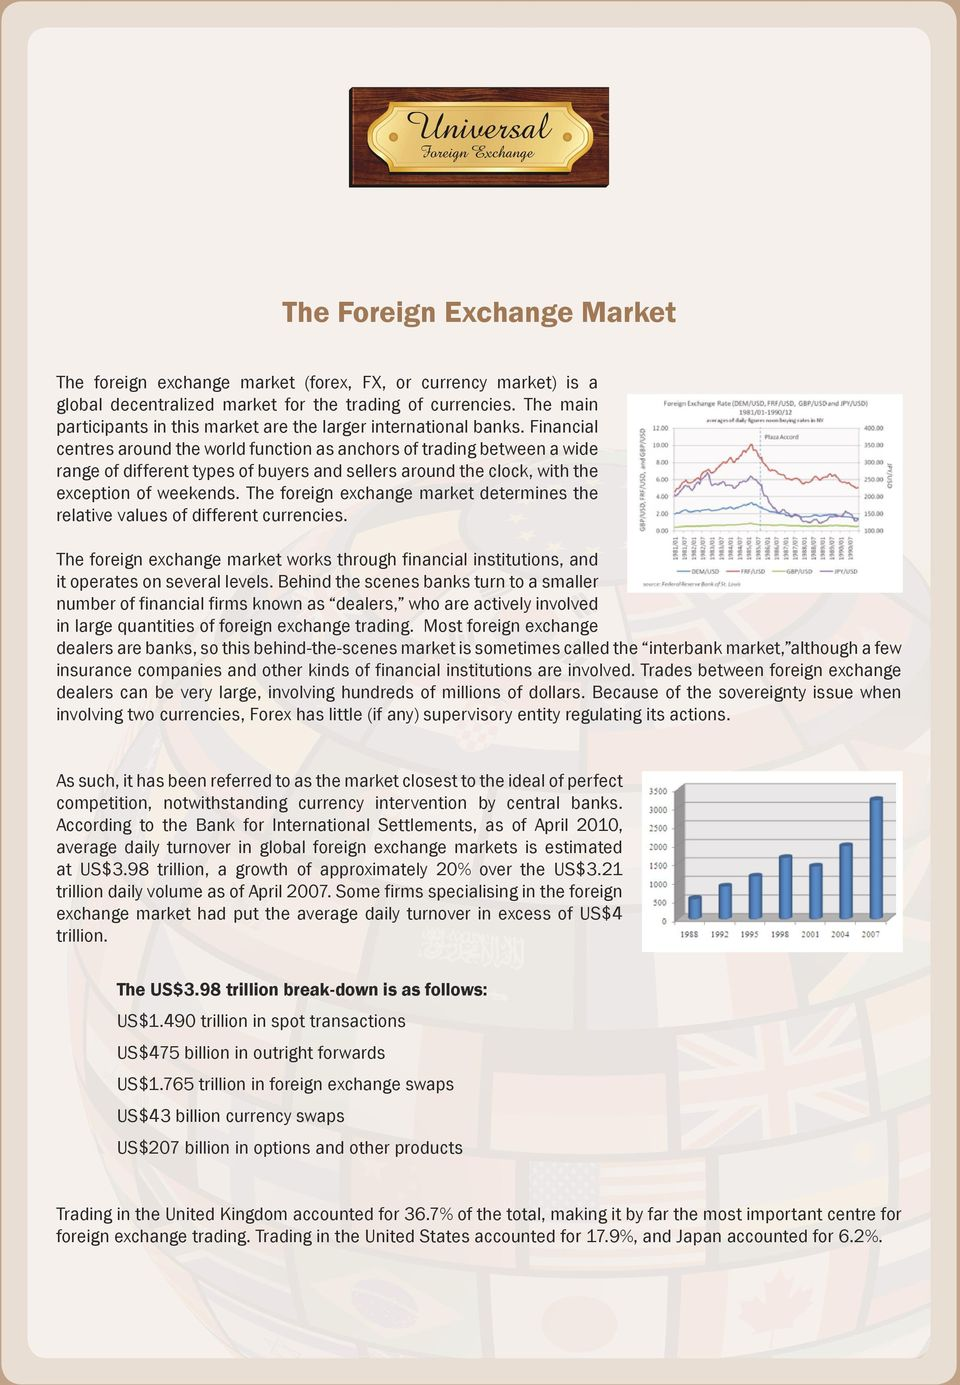 Financial centres around the world function as anchors of trading between a wide range of different types of buyers and sellers around the clock, with the exception of weekends.